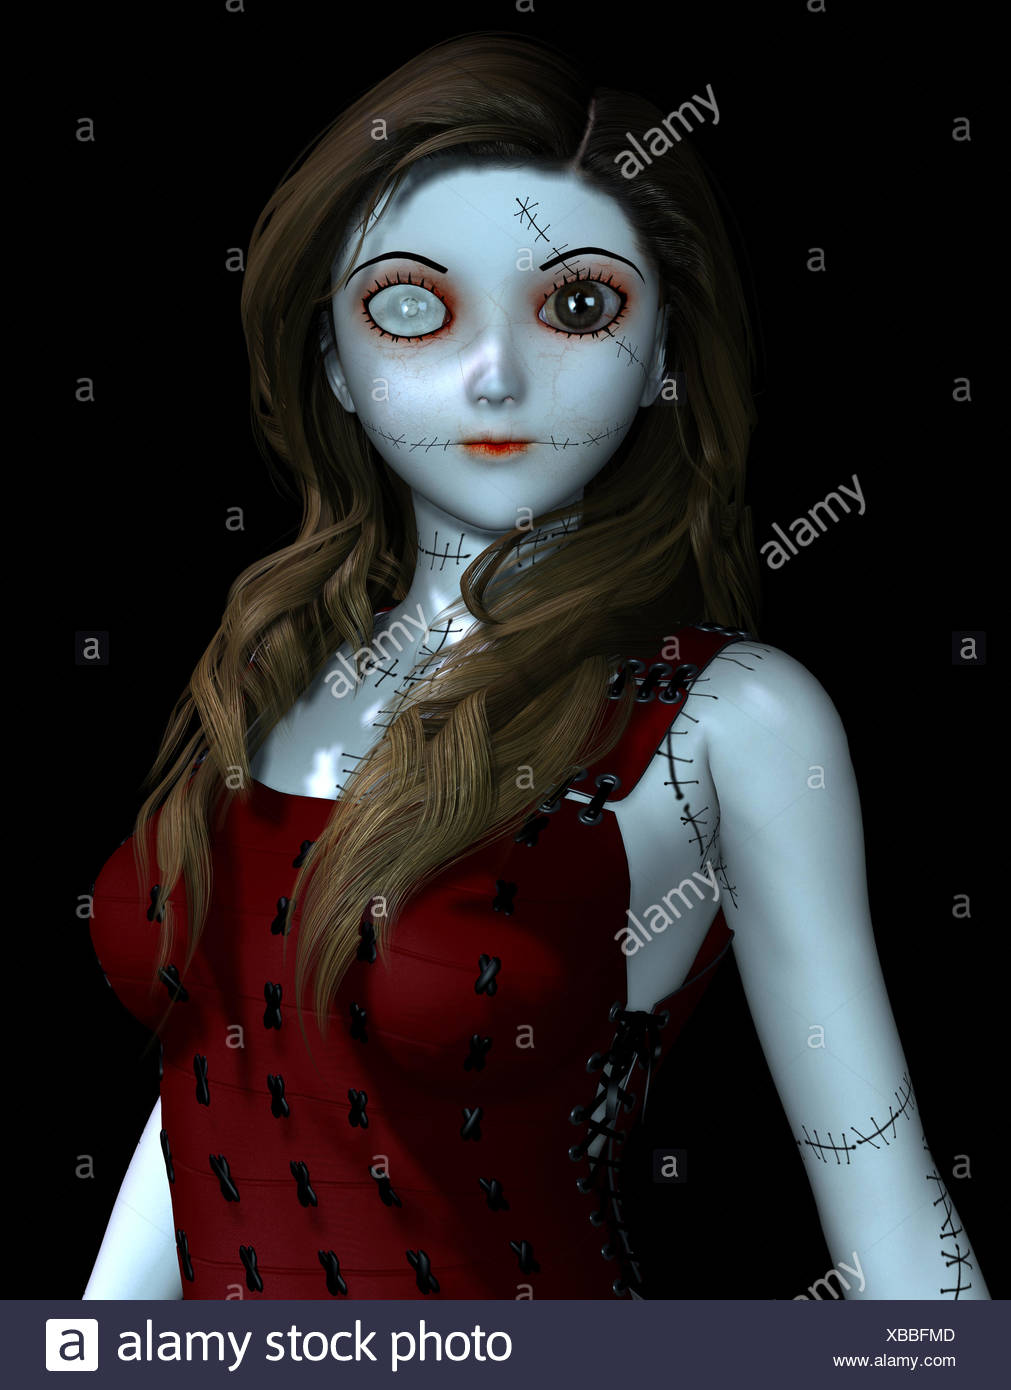 Doll with scars Stock Photo